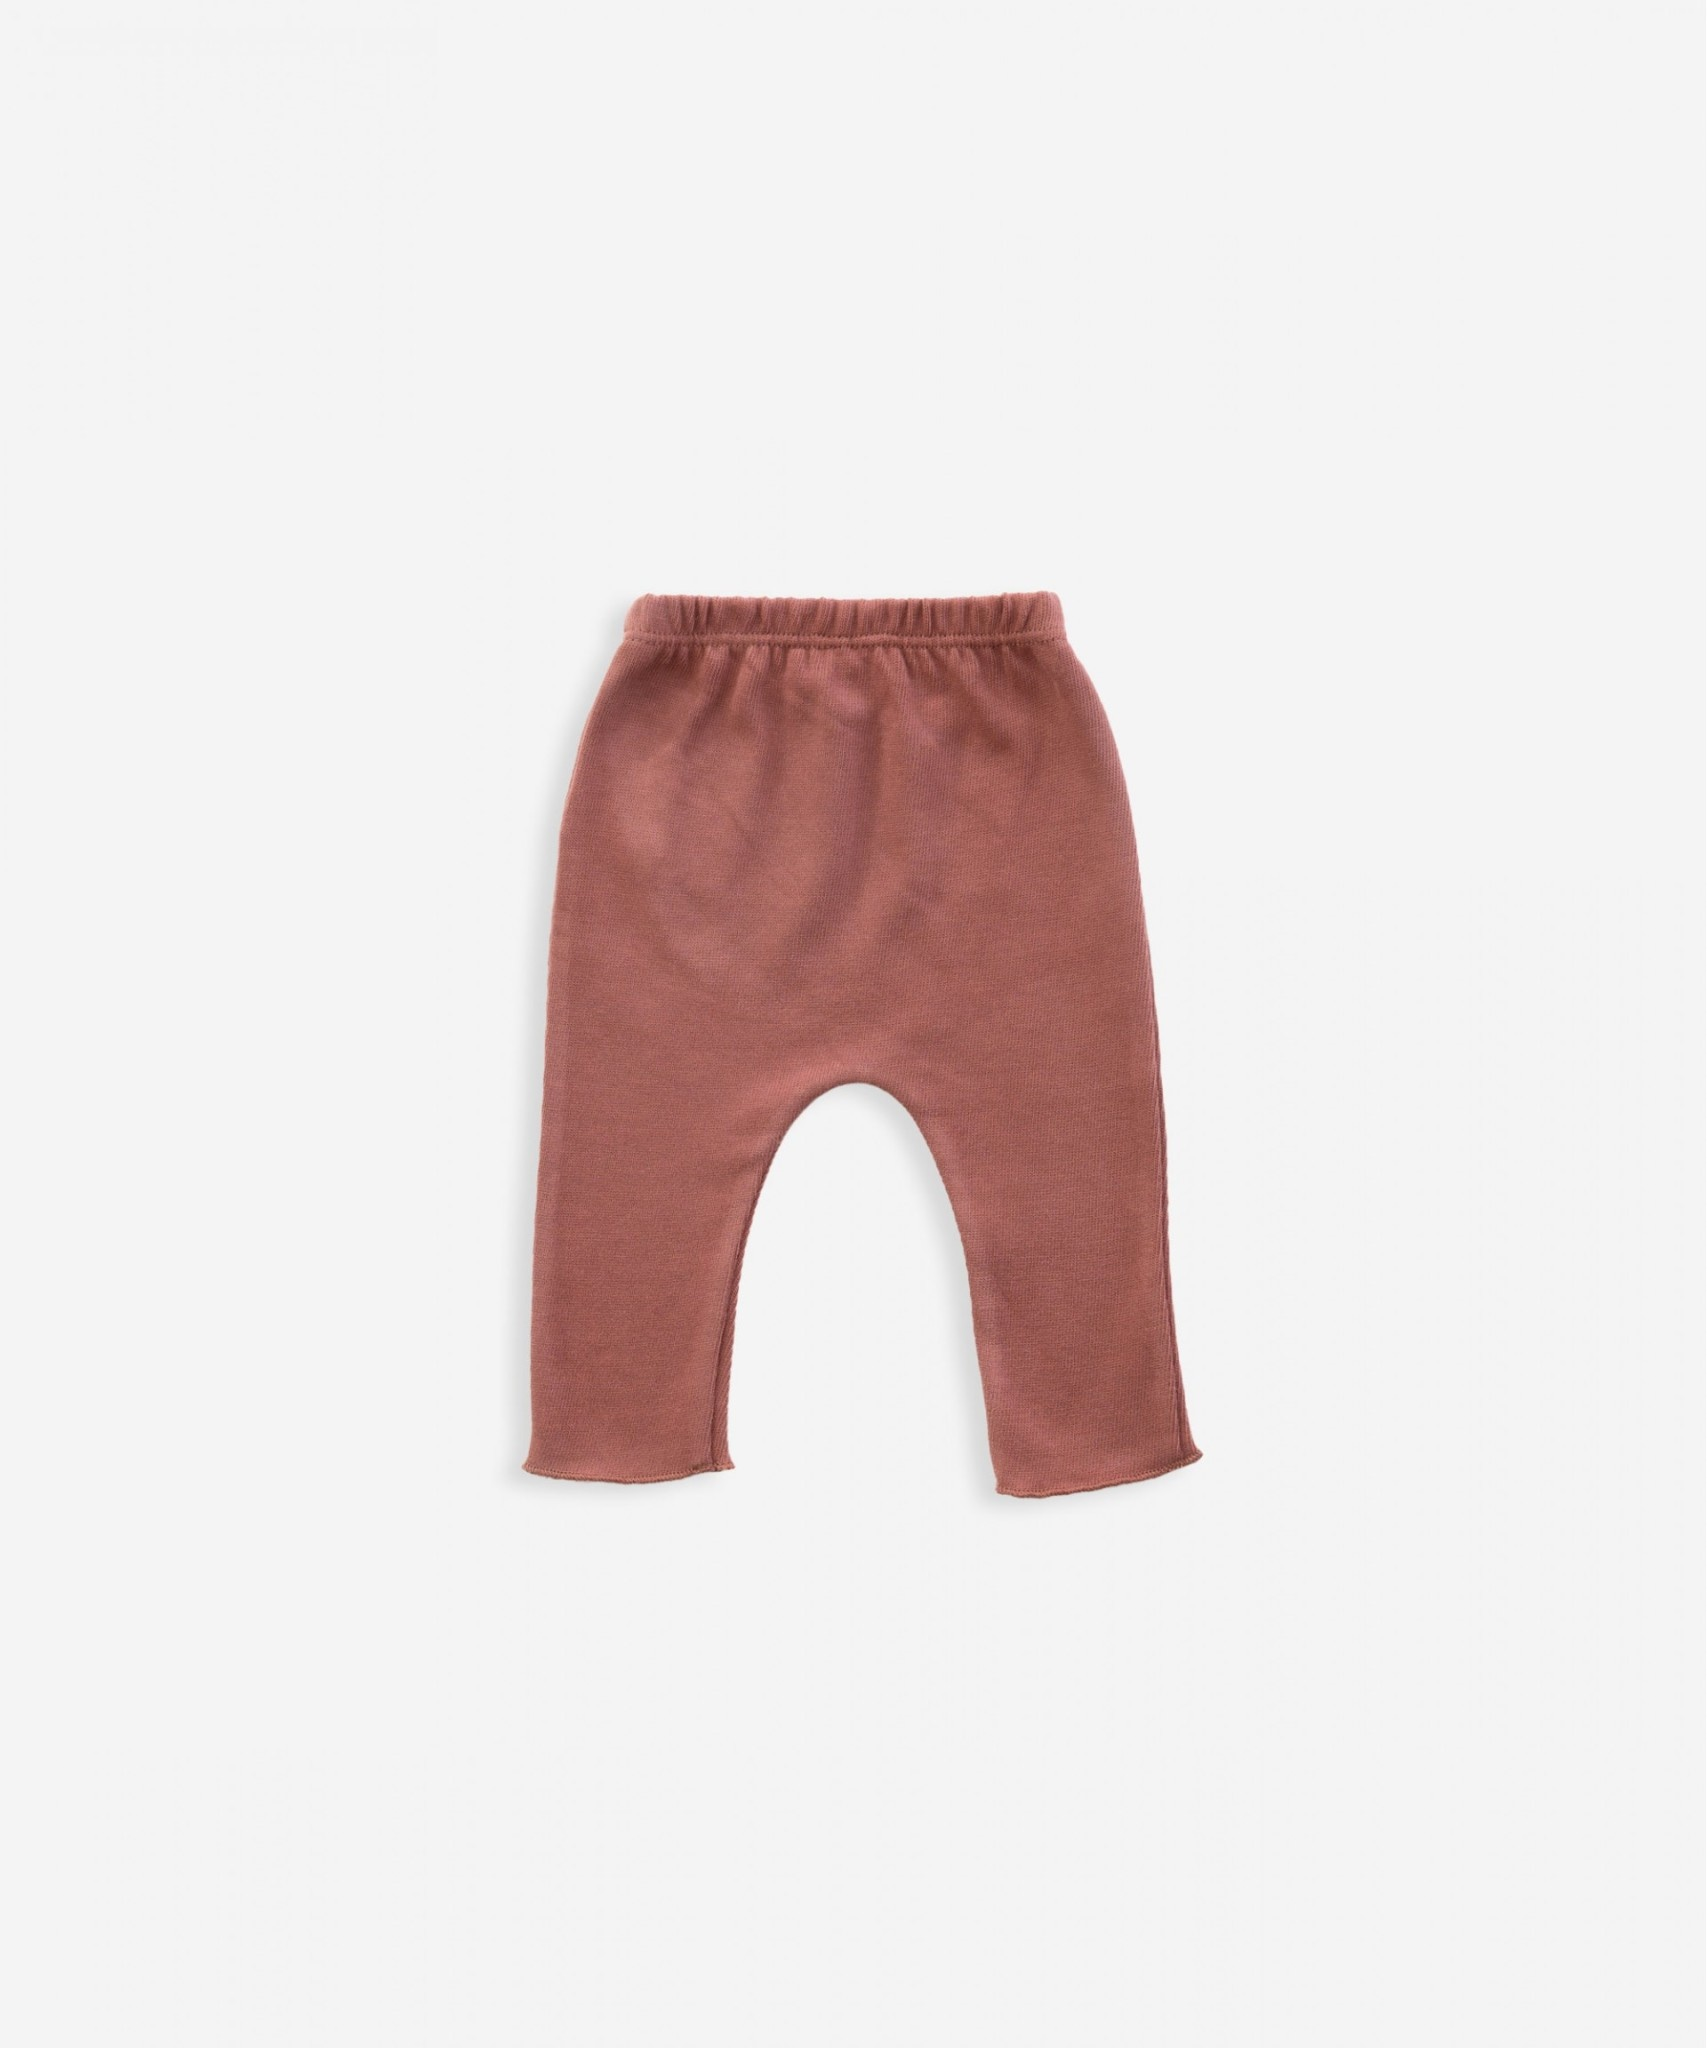 Play-up Cotton trousers with decorative button |Old tile